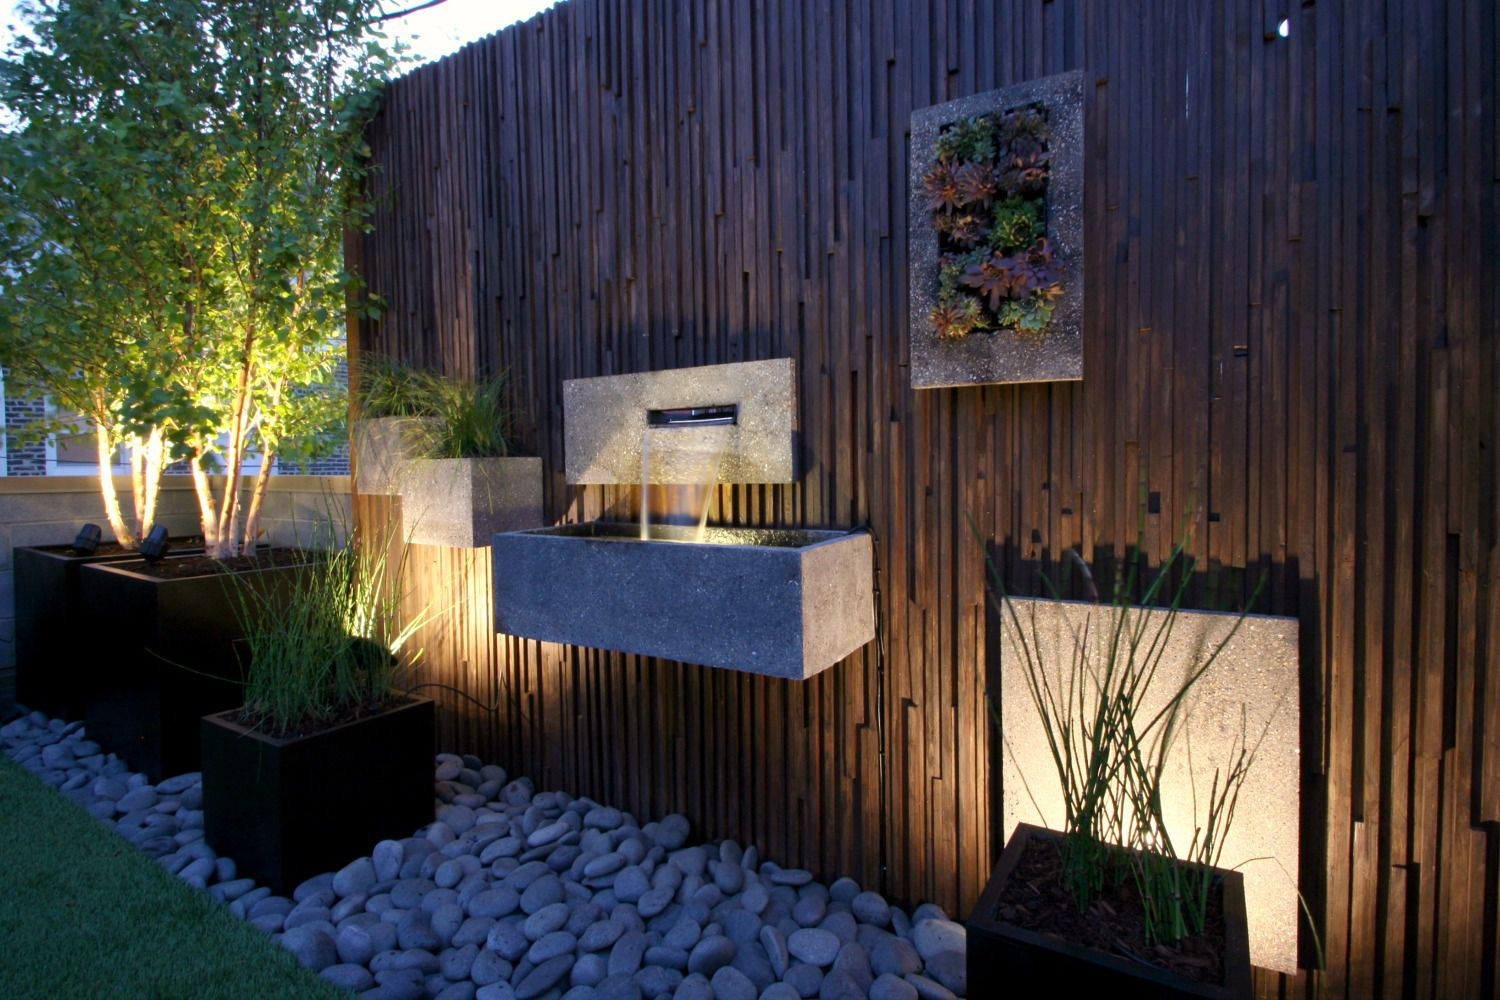 20.SIMPHOME.COM 10 ways to gain privacy in your backyard and garden